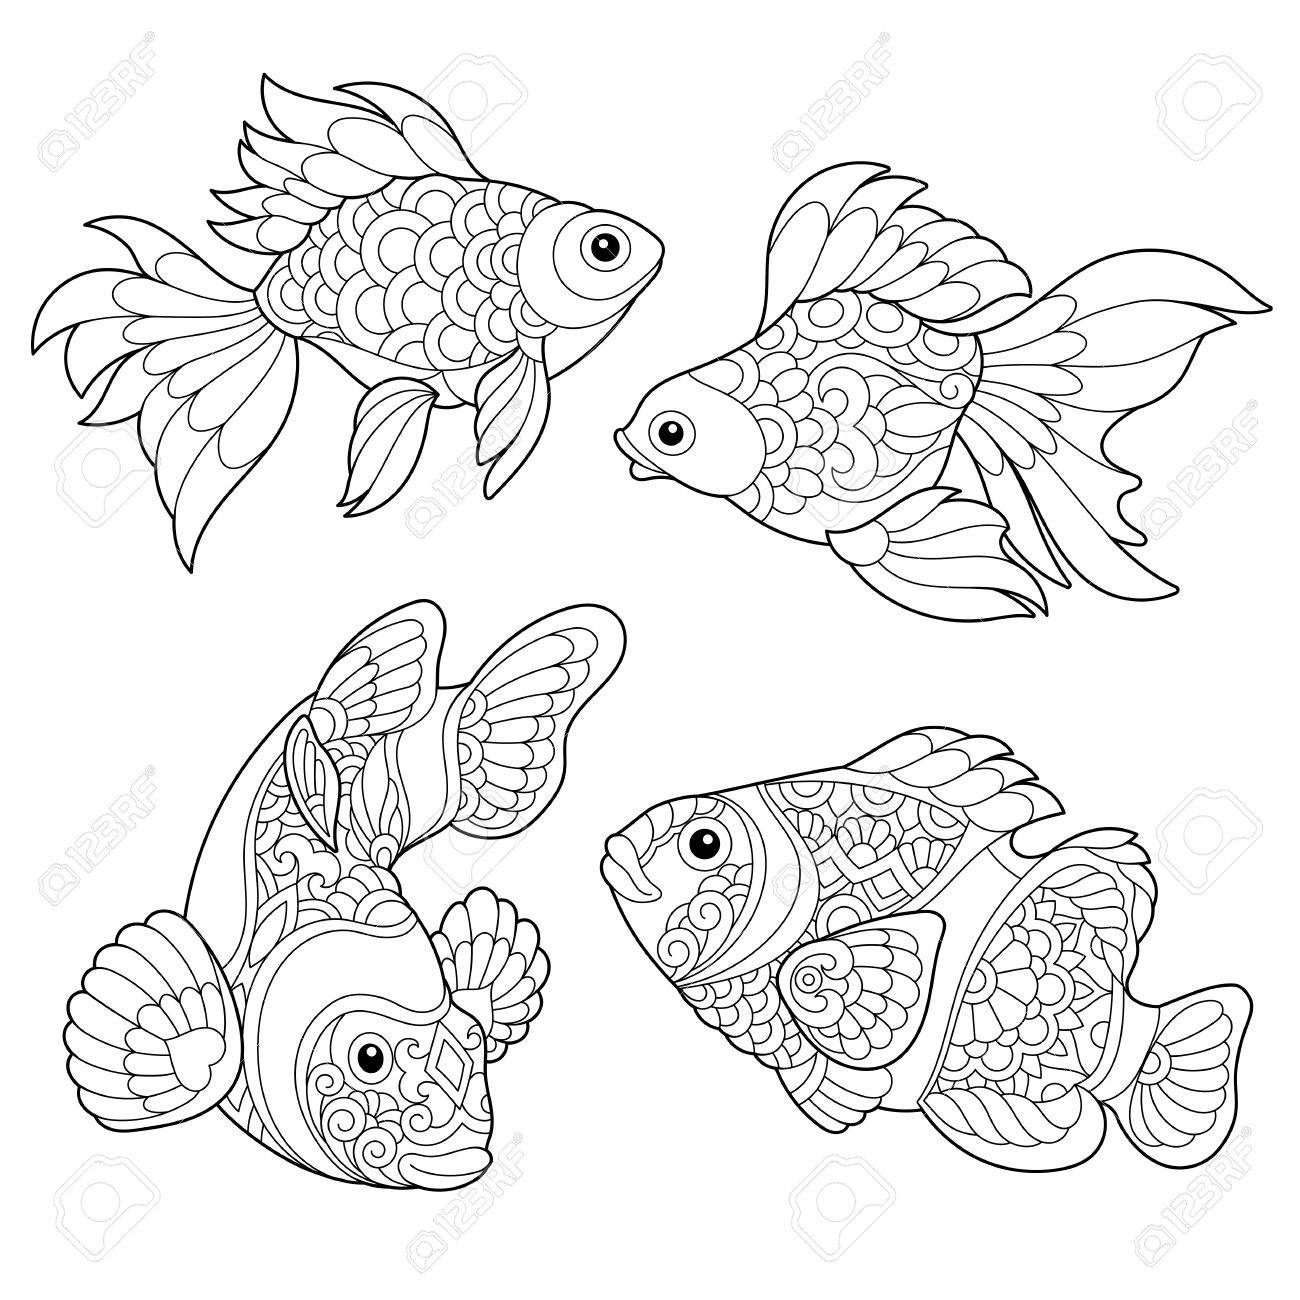 1300x1300 Coloring Page Of Goldfish And Clown Fish. Freehand Sketch Drawing